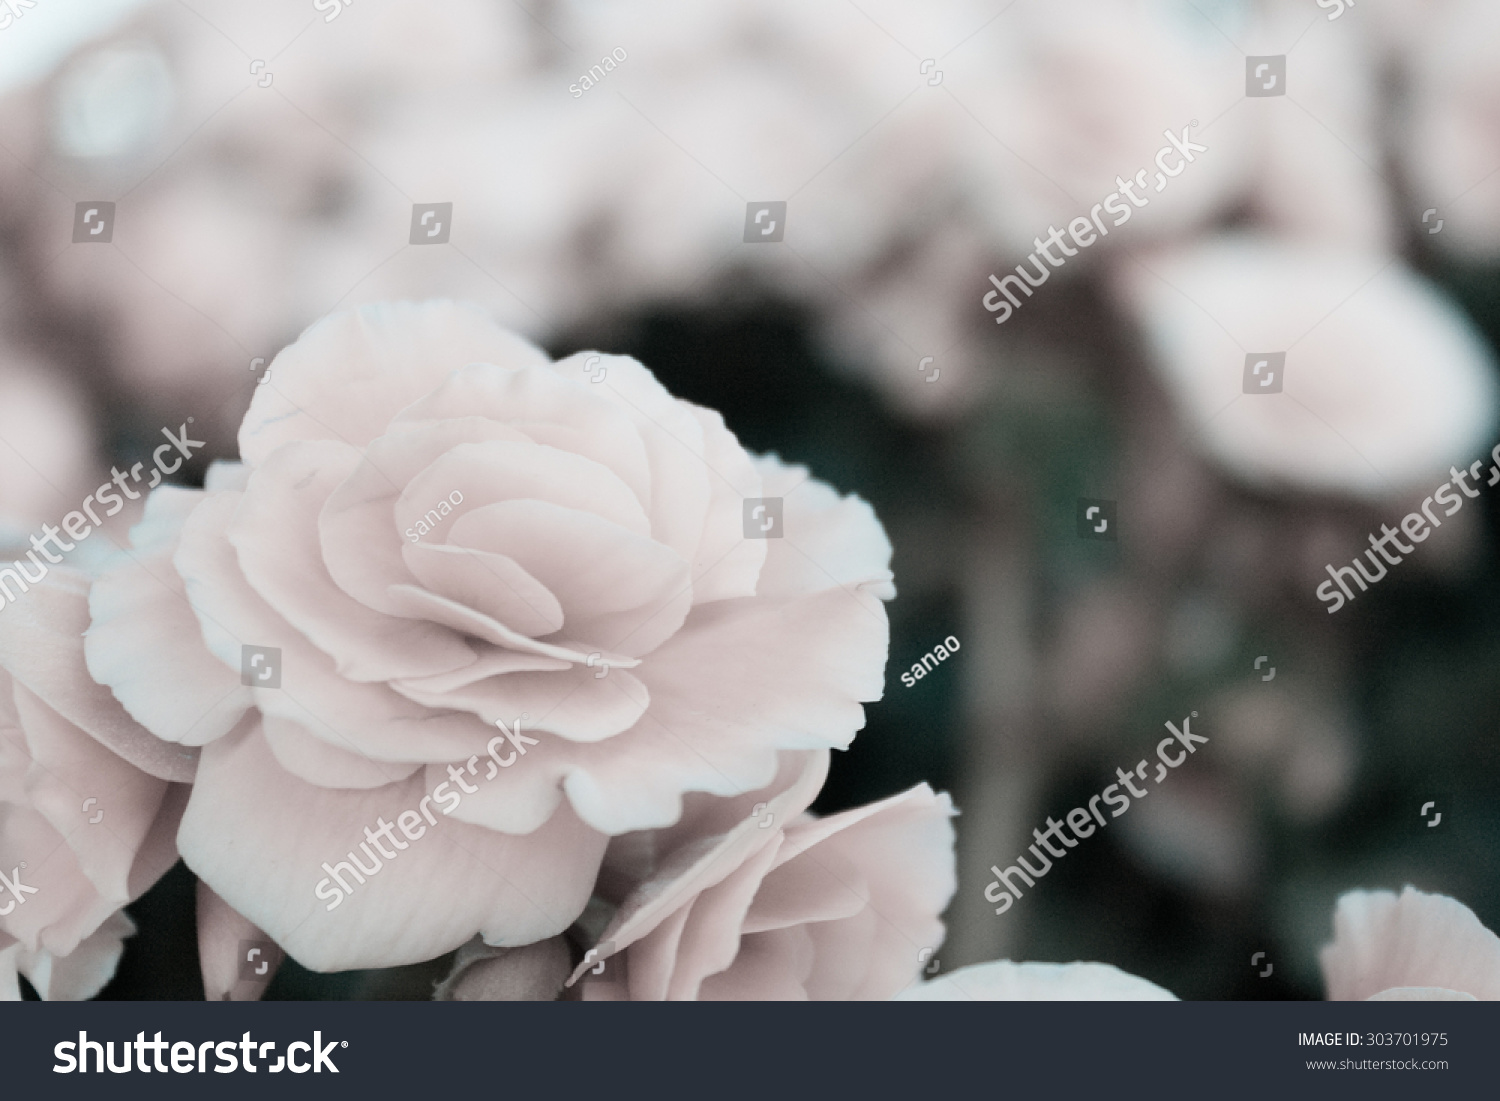 Abstract Background Of Bougainvillea Flowers Soft Tone Black And